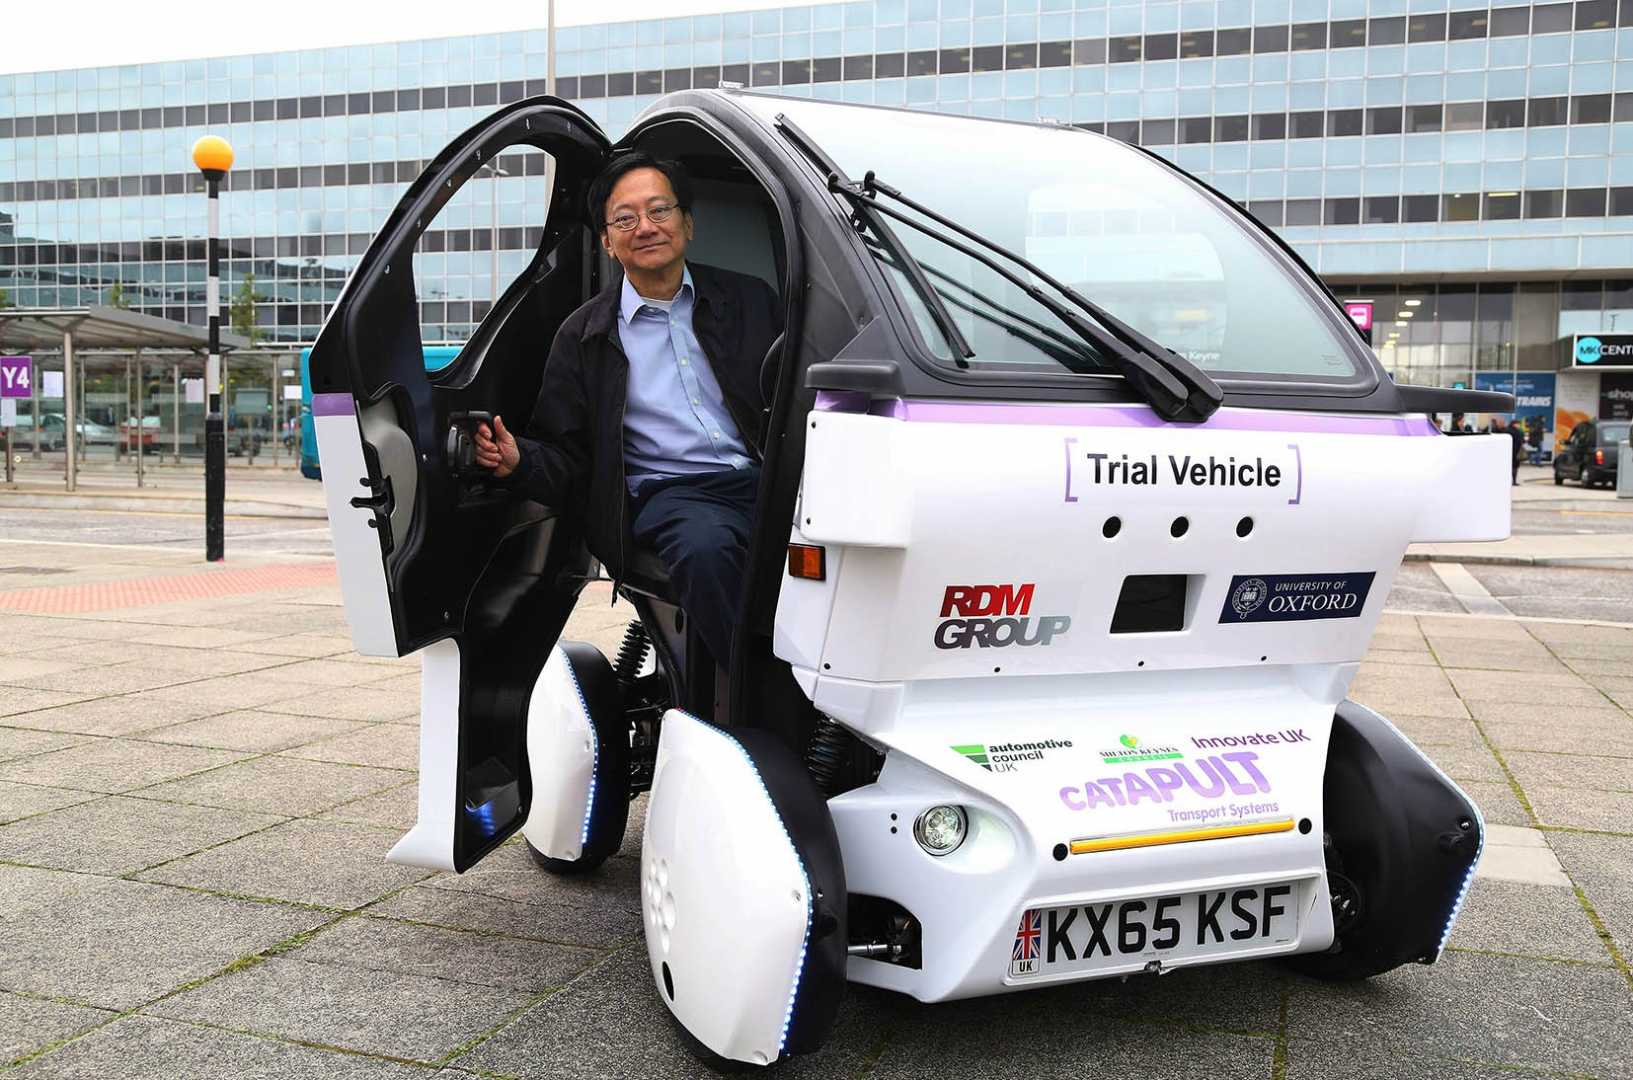 Principal technologist at Transport Systems Catapult Eric Chan unveils the first Lutz Pathfinder pod vehicle developed by Coventry's RDM Group.